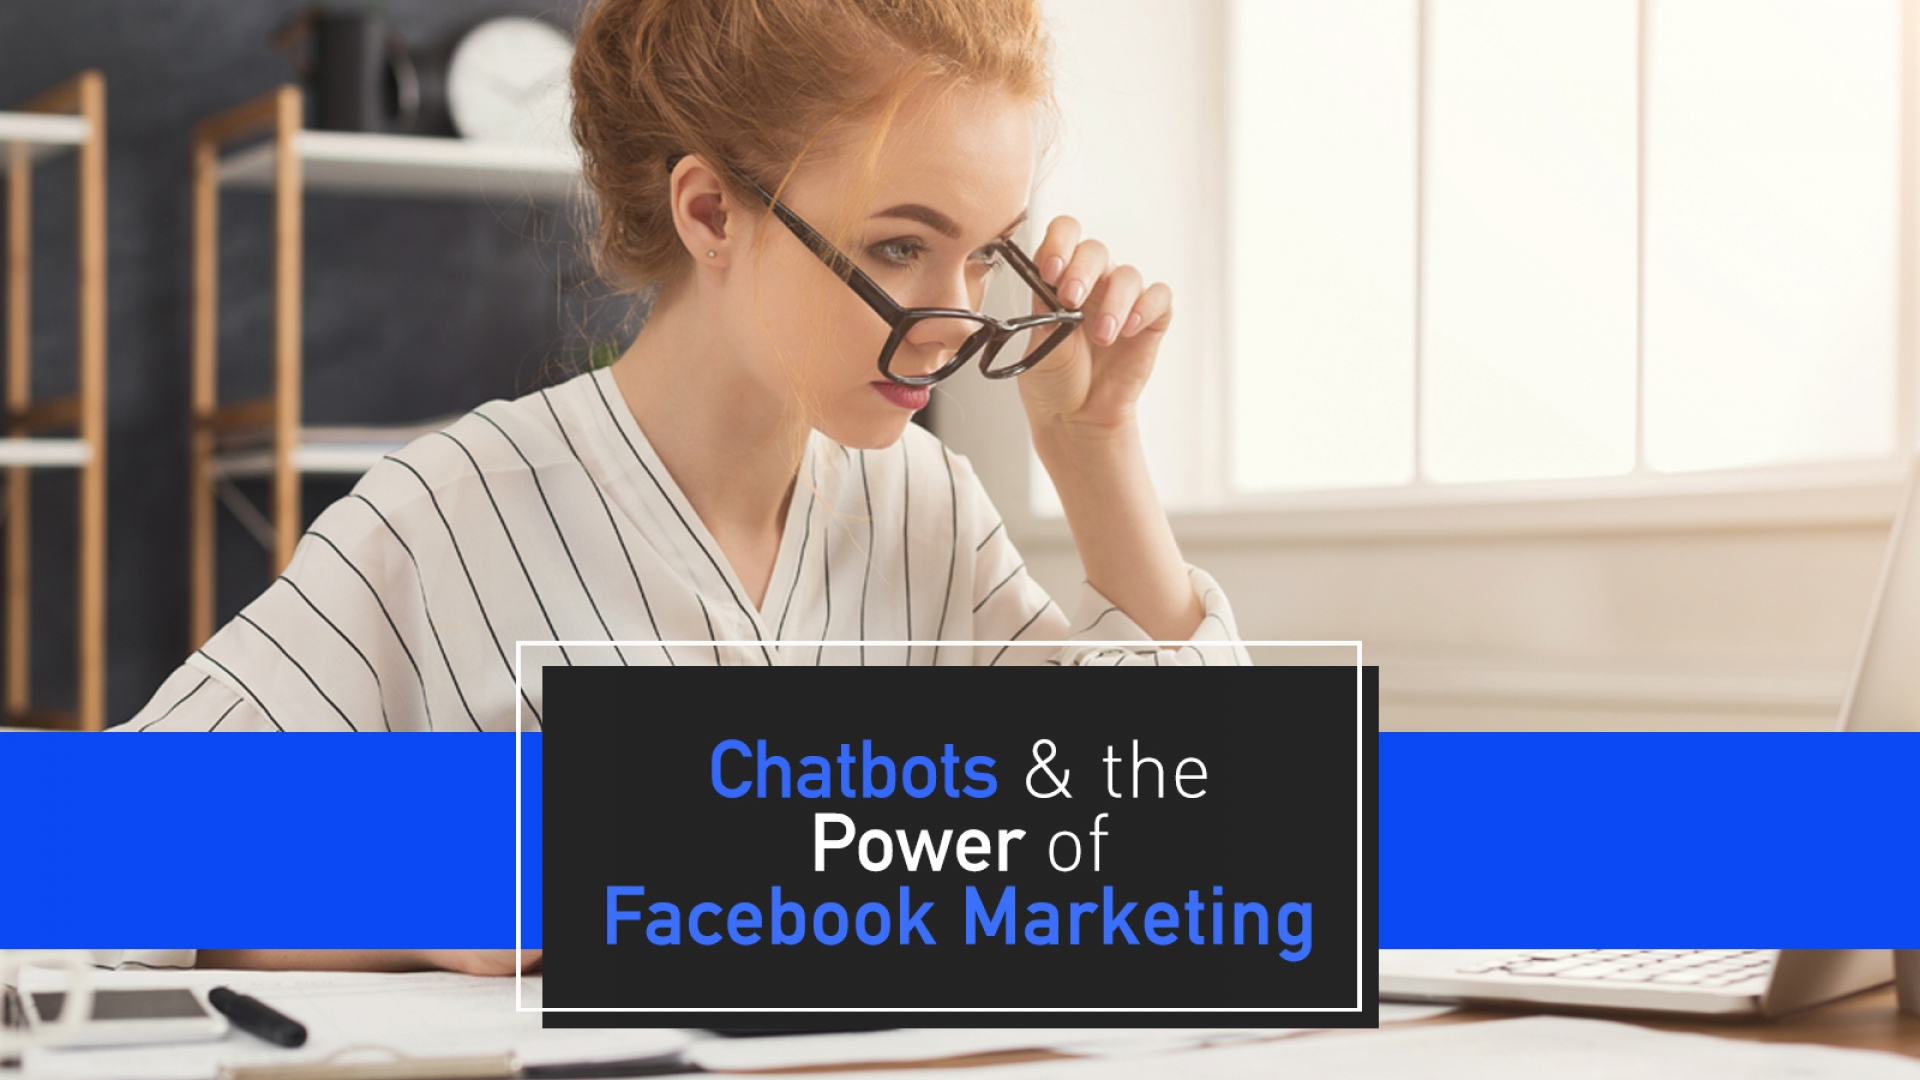 Chatbots & the Power of Facebook Messenger Marketing - New Age Explorer, Digital Marketing Agency